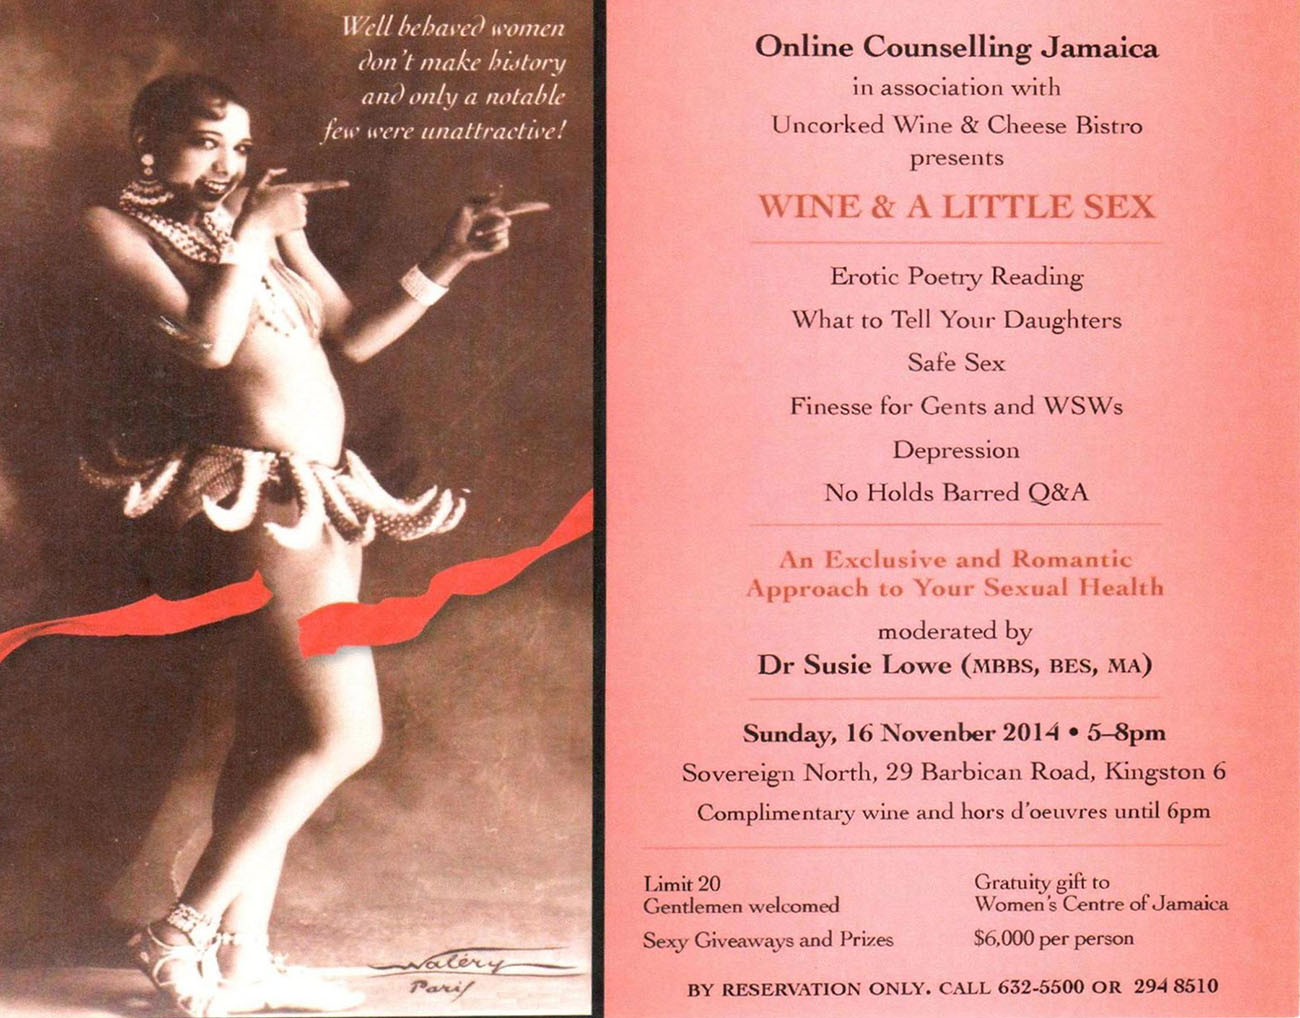 Digitalization plan in Jamaica. Health Travel. Wine and A little sex event.